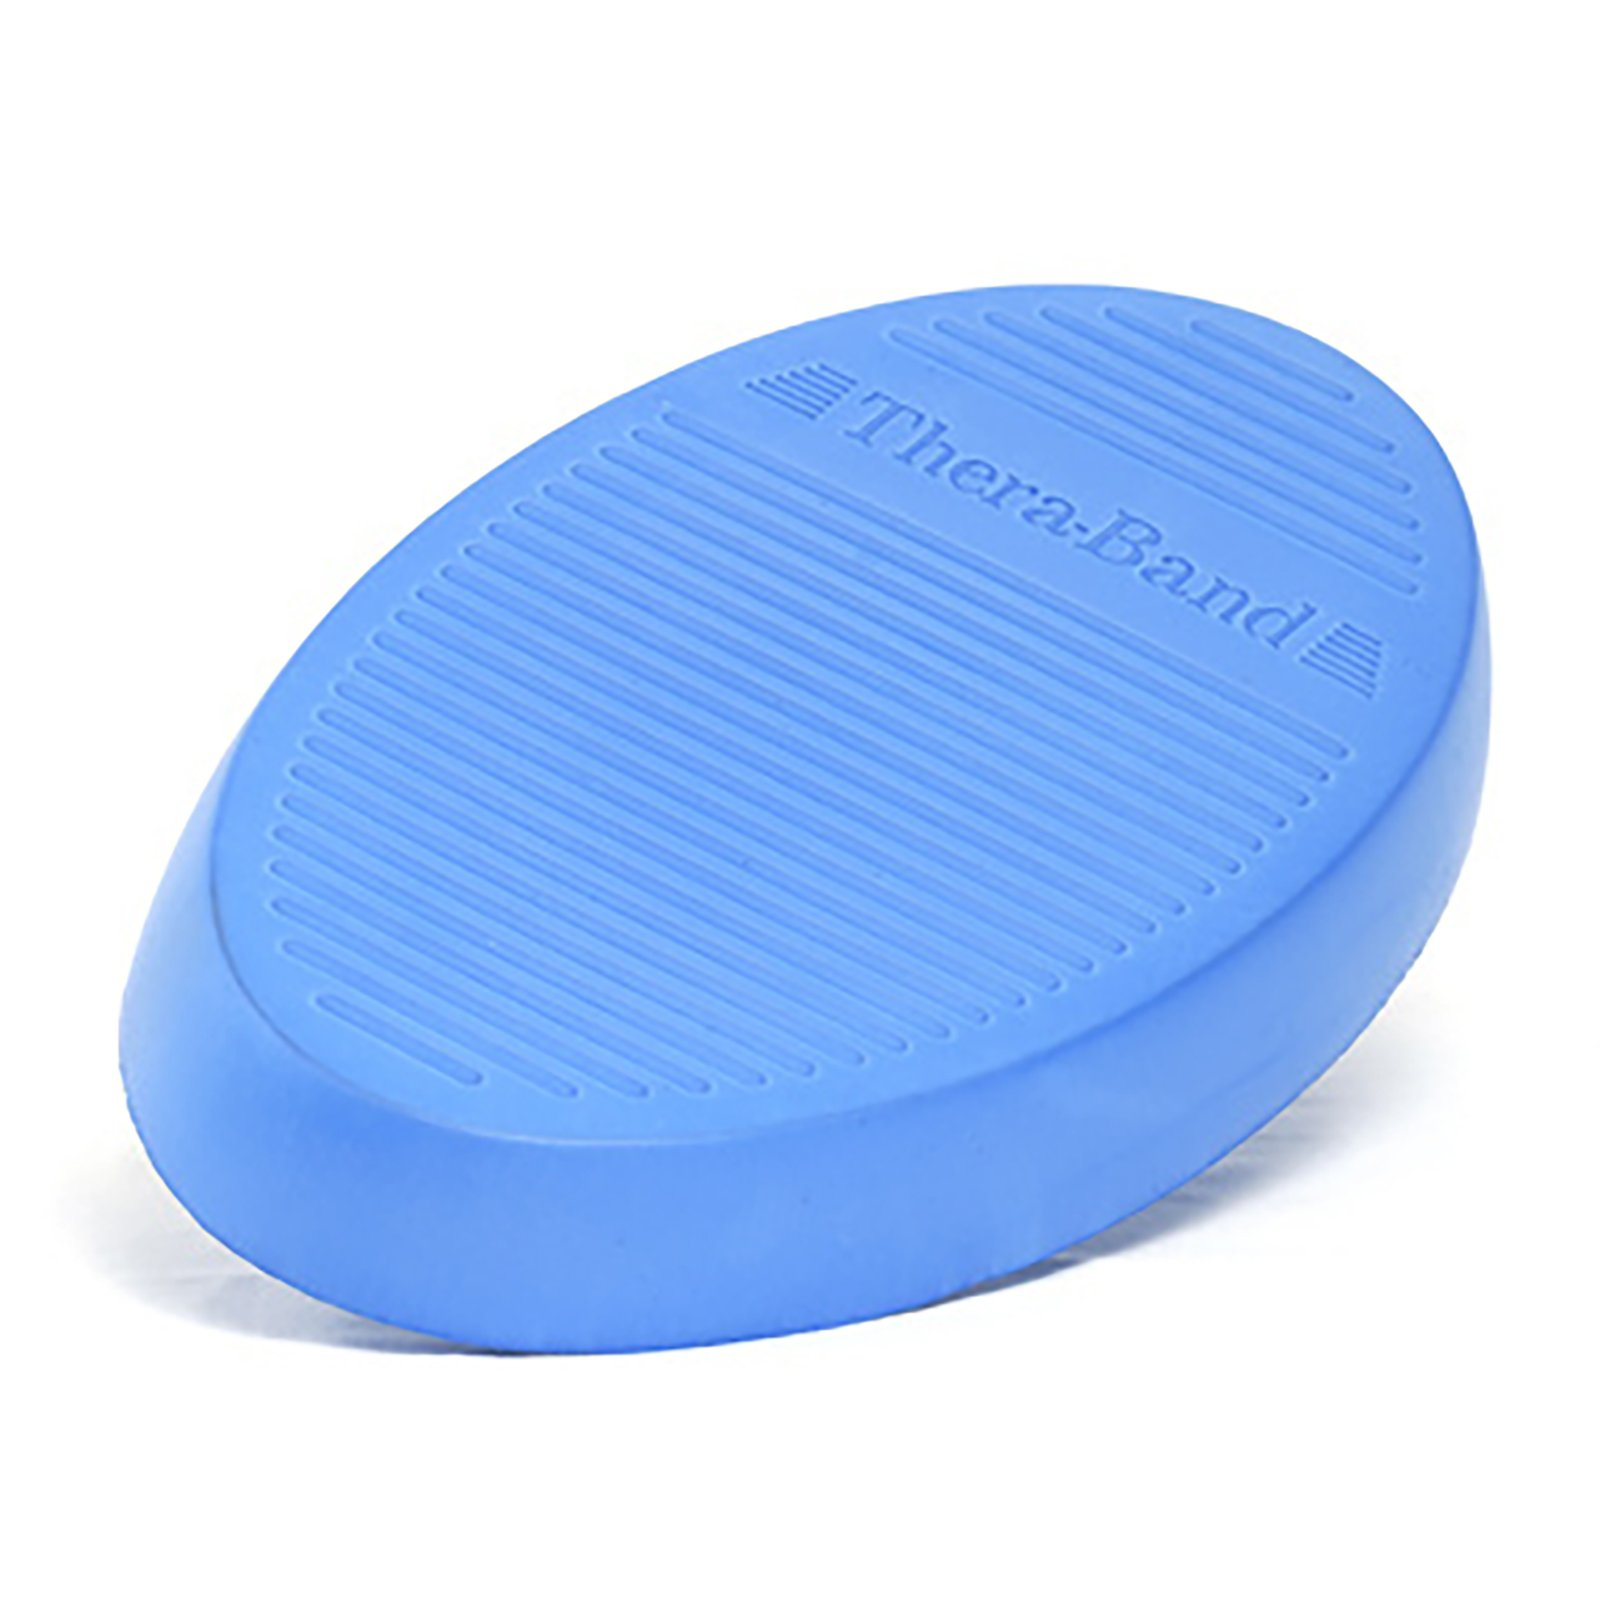 TheraBand Stability Trainer Pad, Intermediate Level Blue Foam Pad, Balance Trainer & Wobble Cushion for Balance & Core Strengthening, Rehabilitation, Physical Therapy, Round Sport Balance Trainer